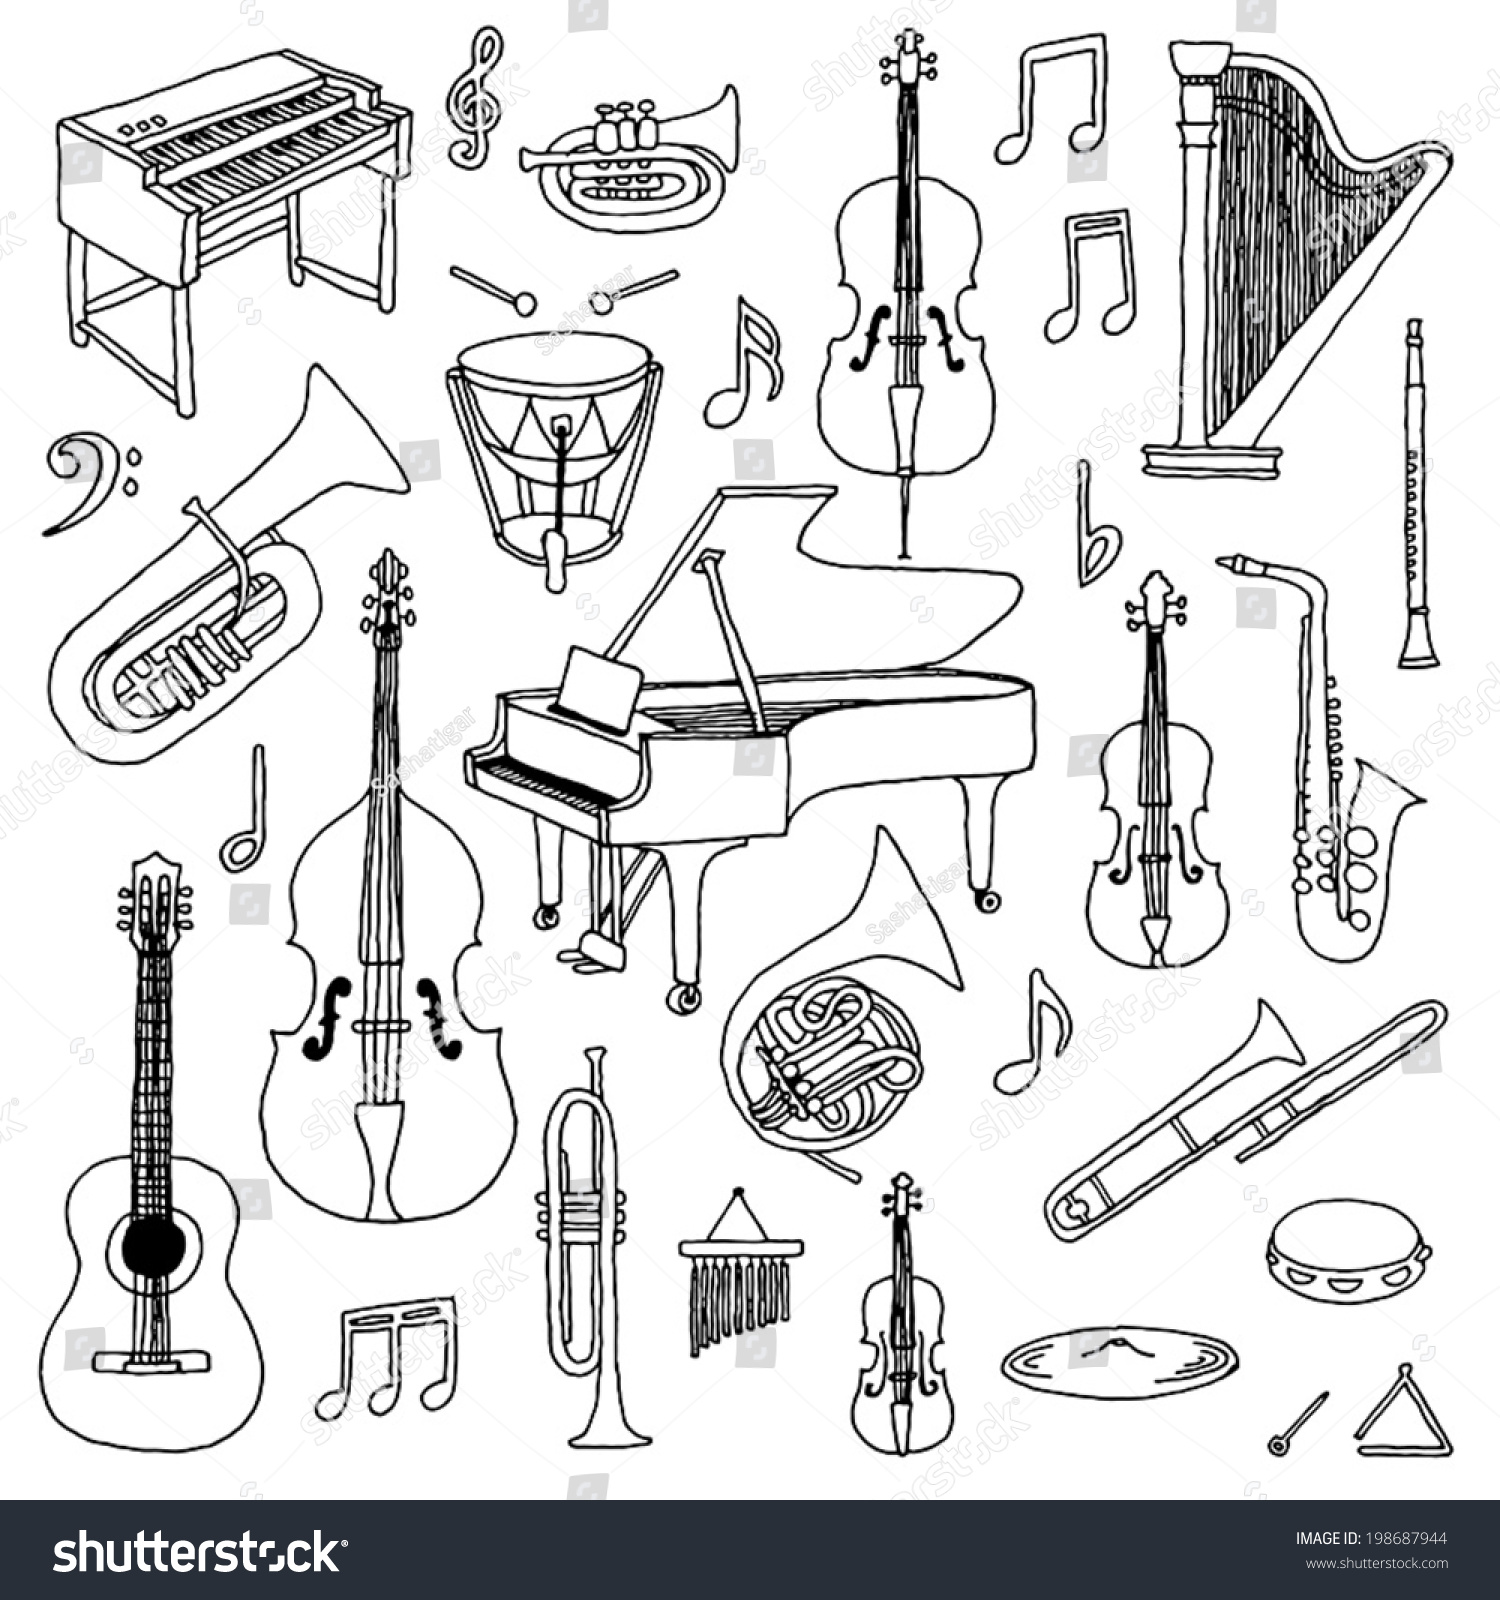 Hand Drawn Doodle Musical Instruments Classical Stock